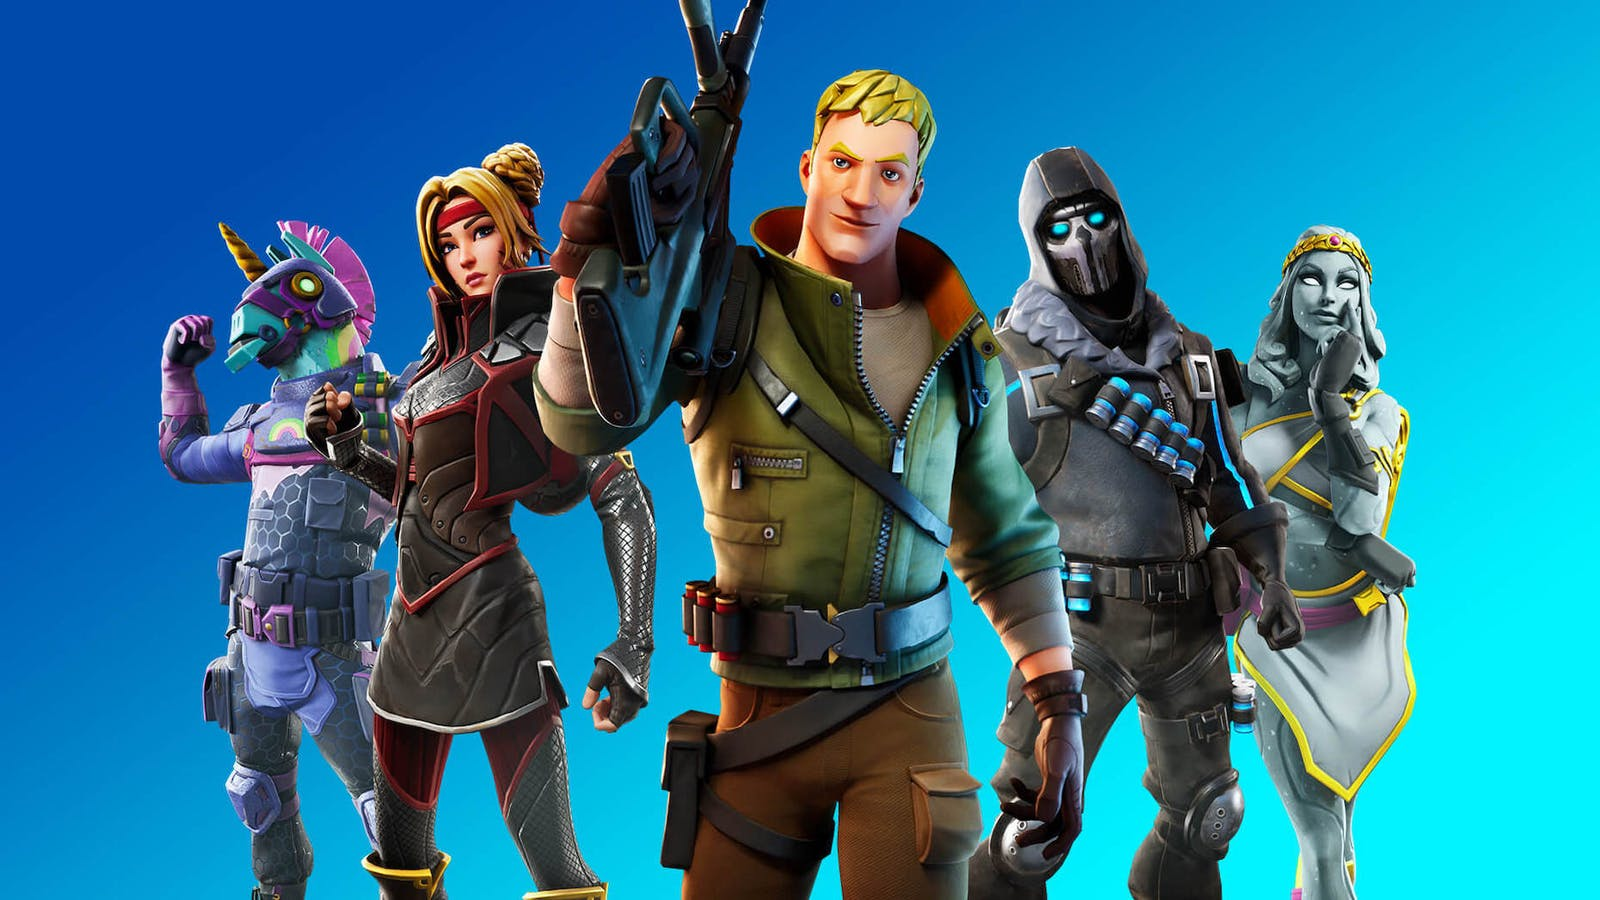 A lineup of Fortnite characters. Credit: Epic Games